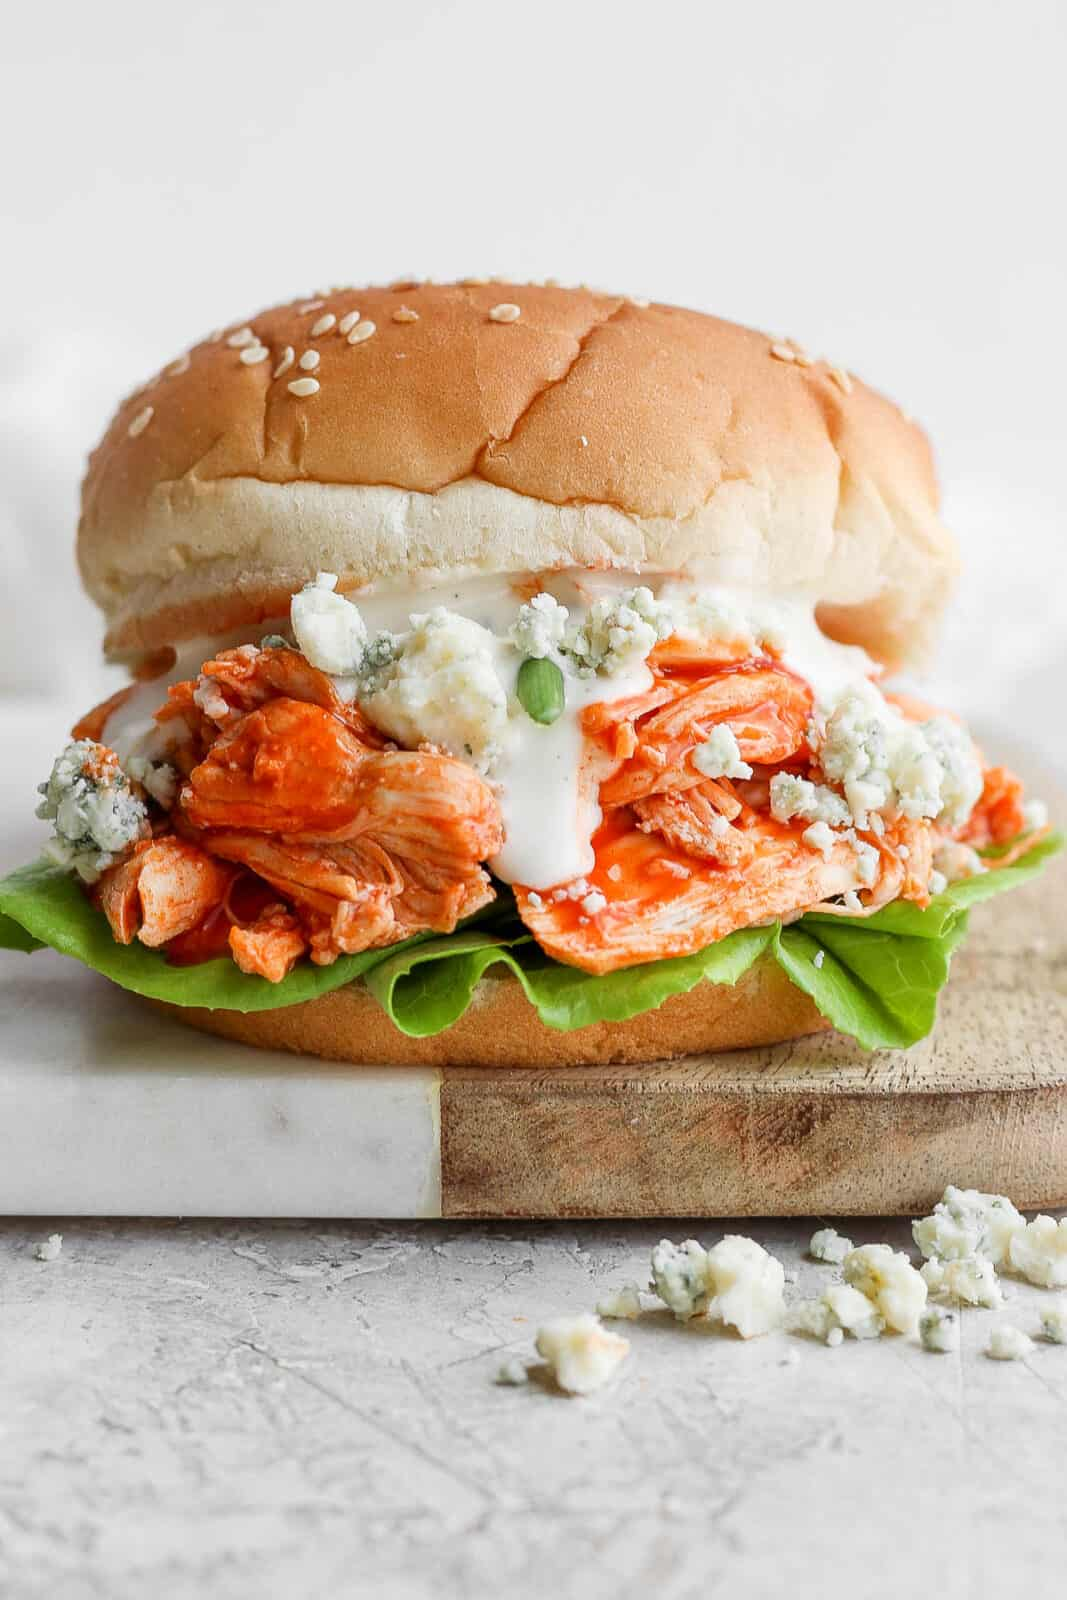 Buffalo chicken sandwich with all the toppings.